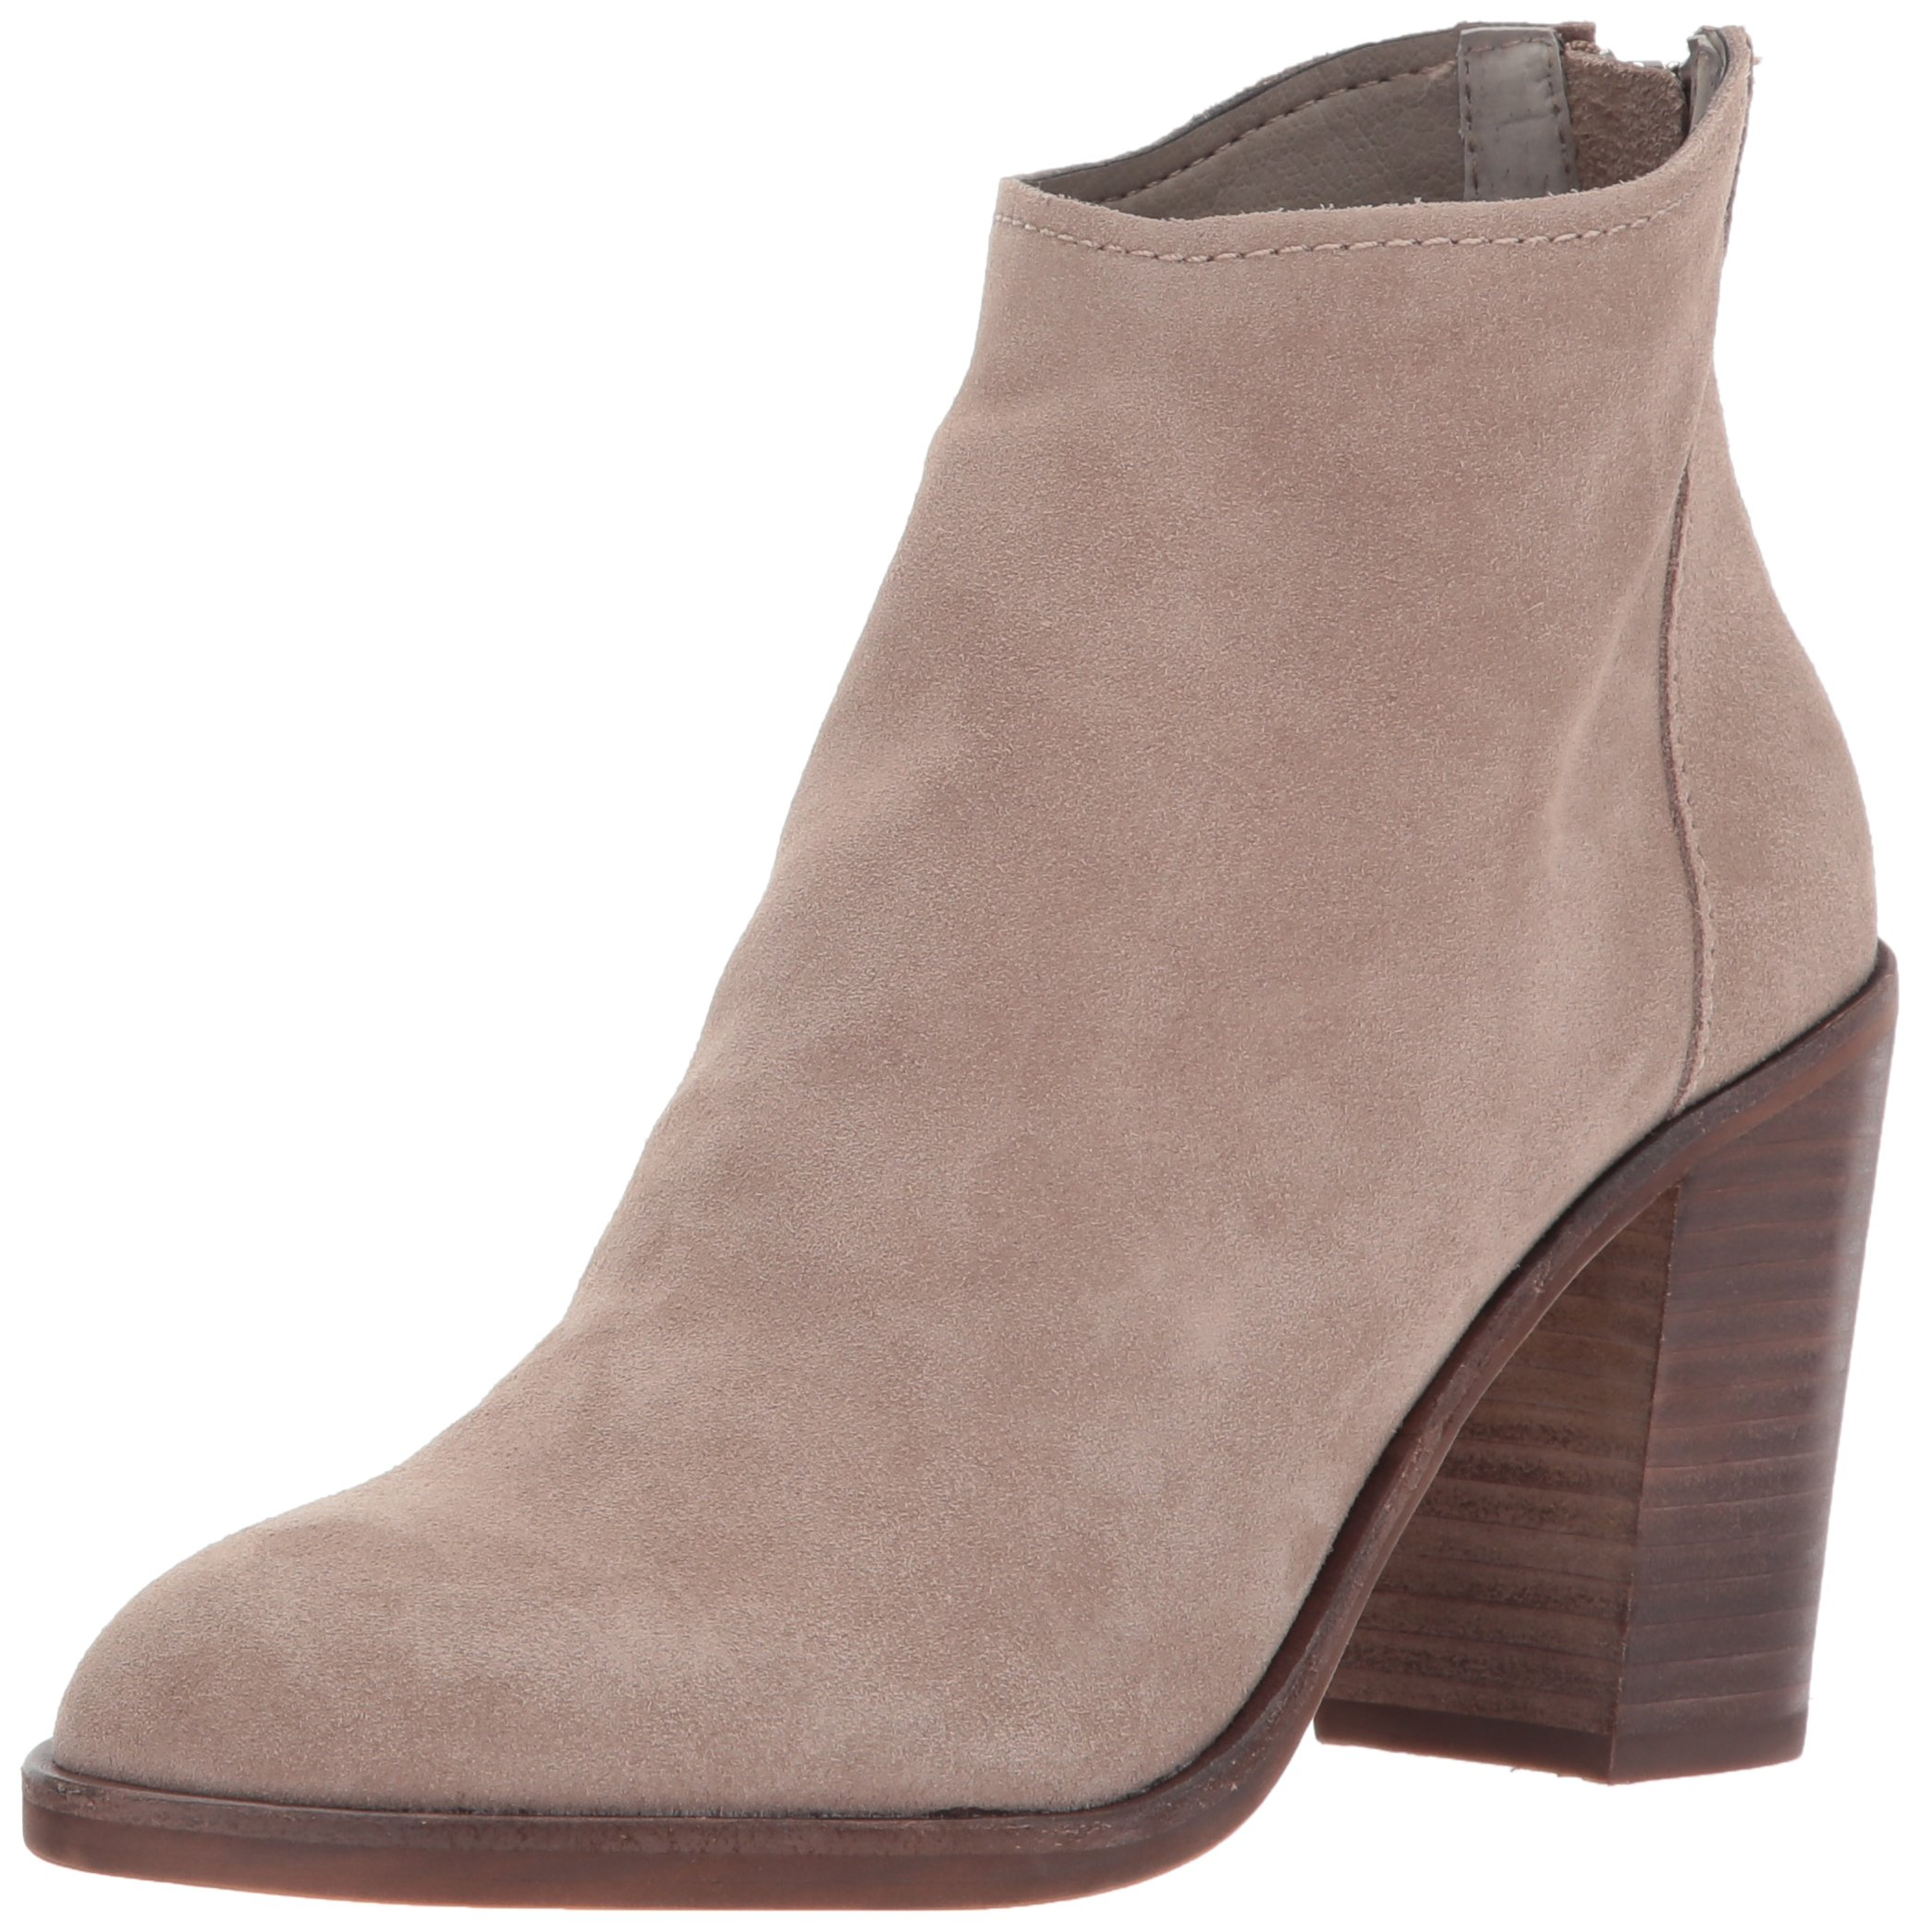 Dolce Vita Women's Stevie Ankle Boot, Taupe Suede, 9 Medium US